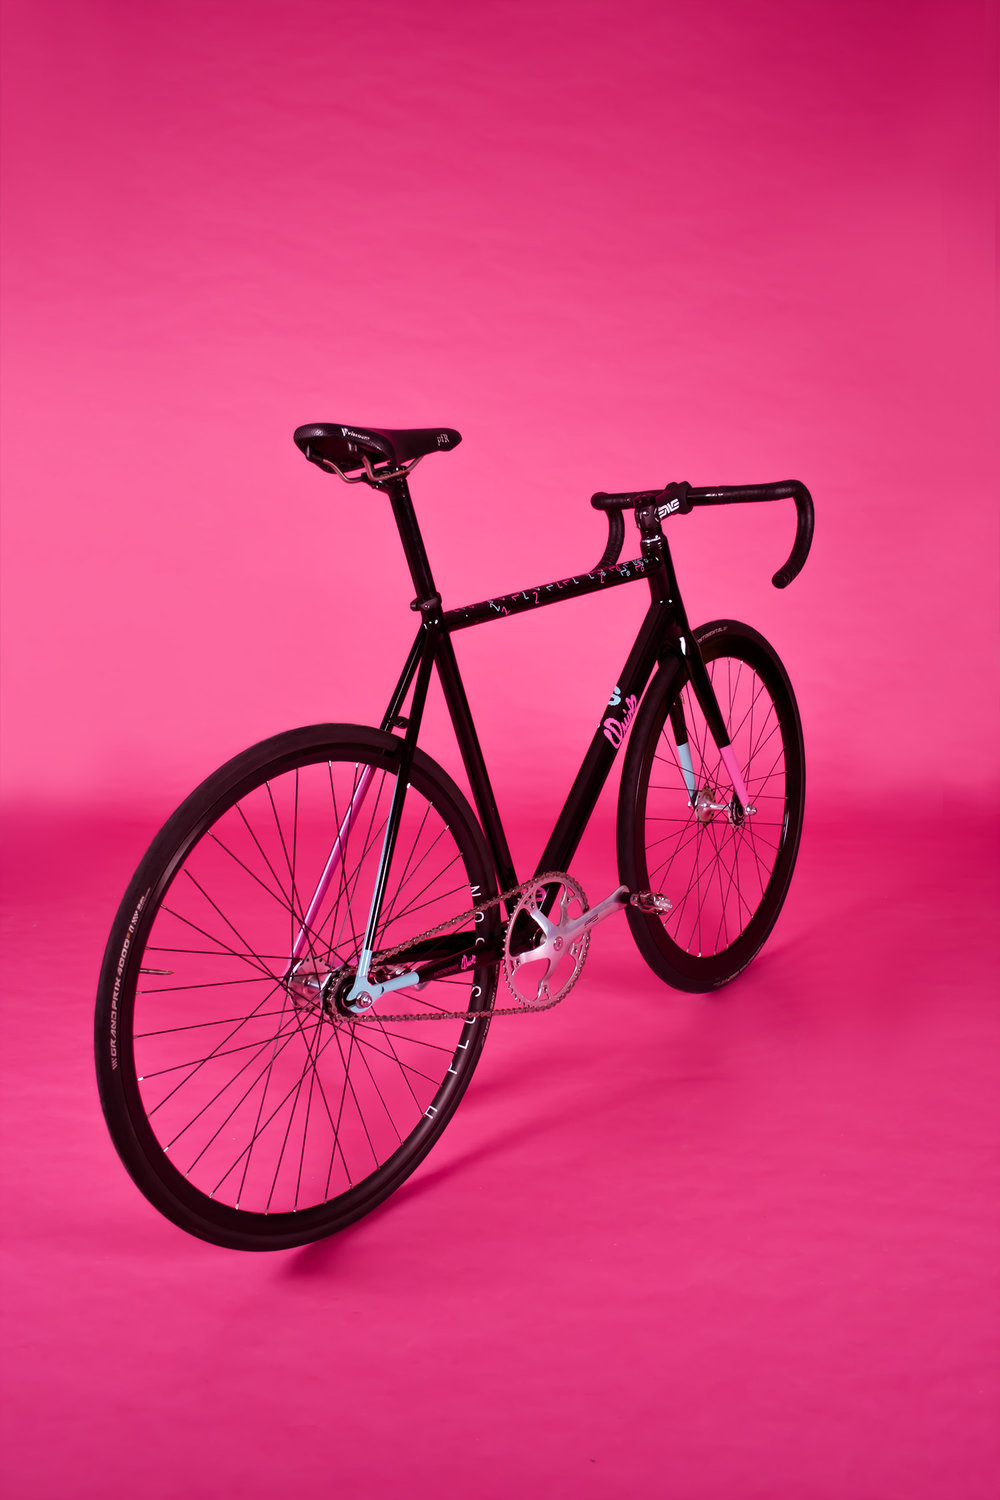 quirk_cycles_elf_proto_pink_web_0010.jpg